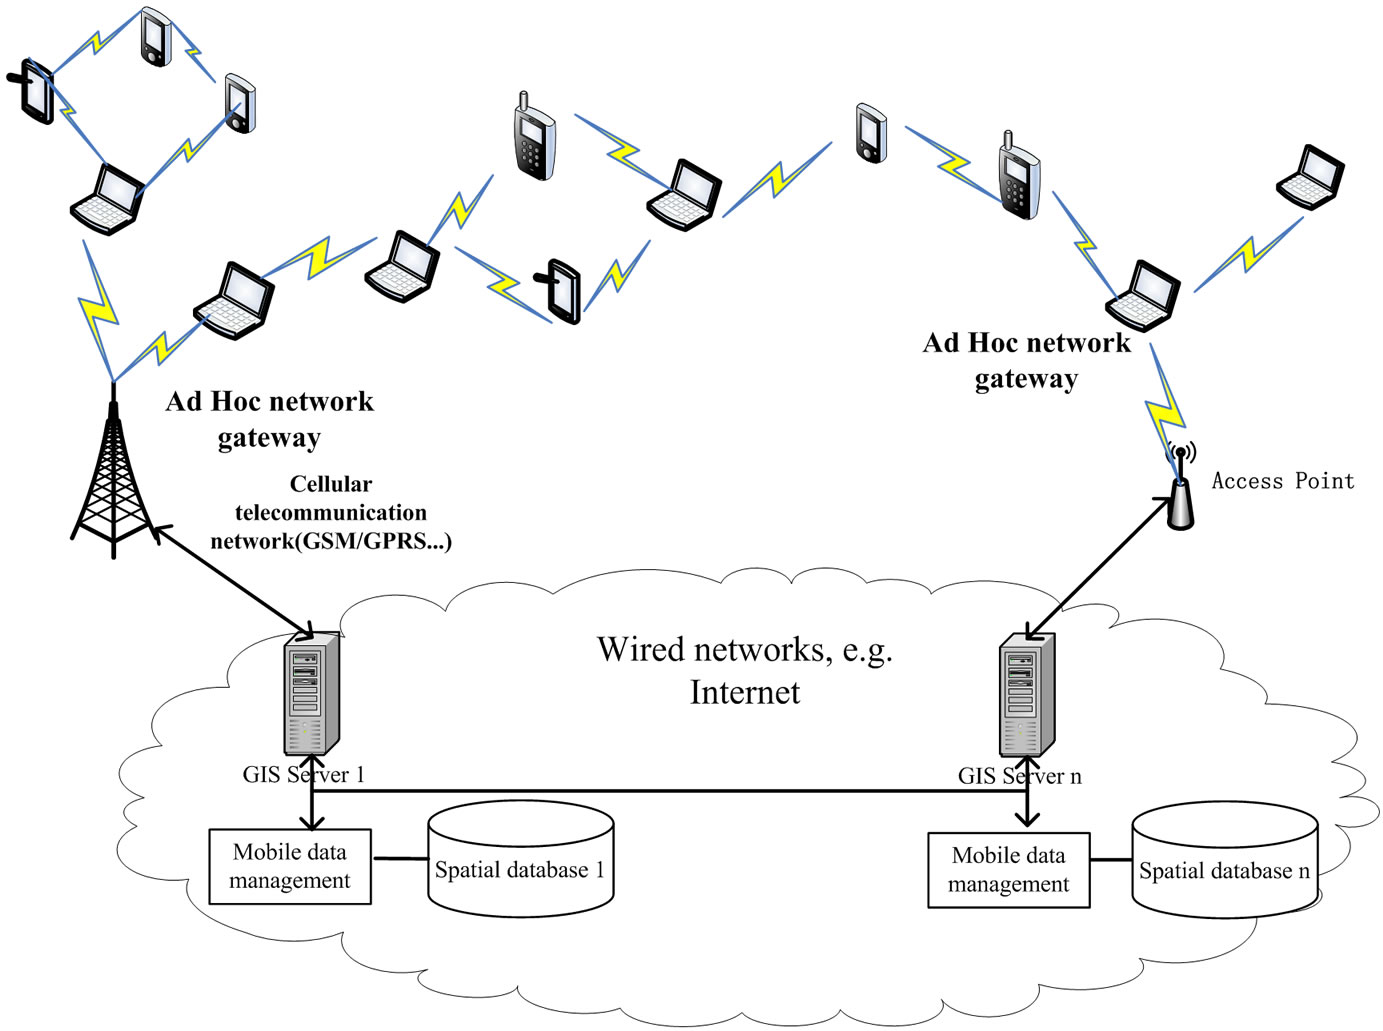 thesis on ad hoc network